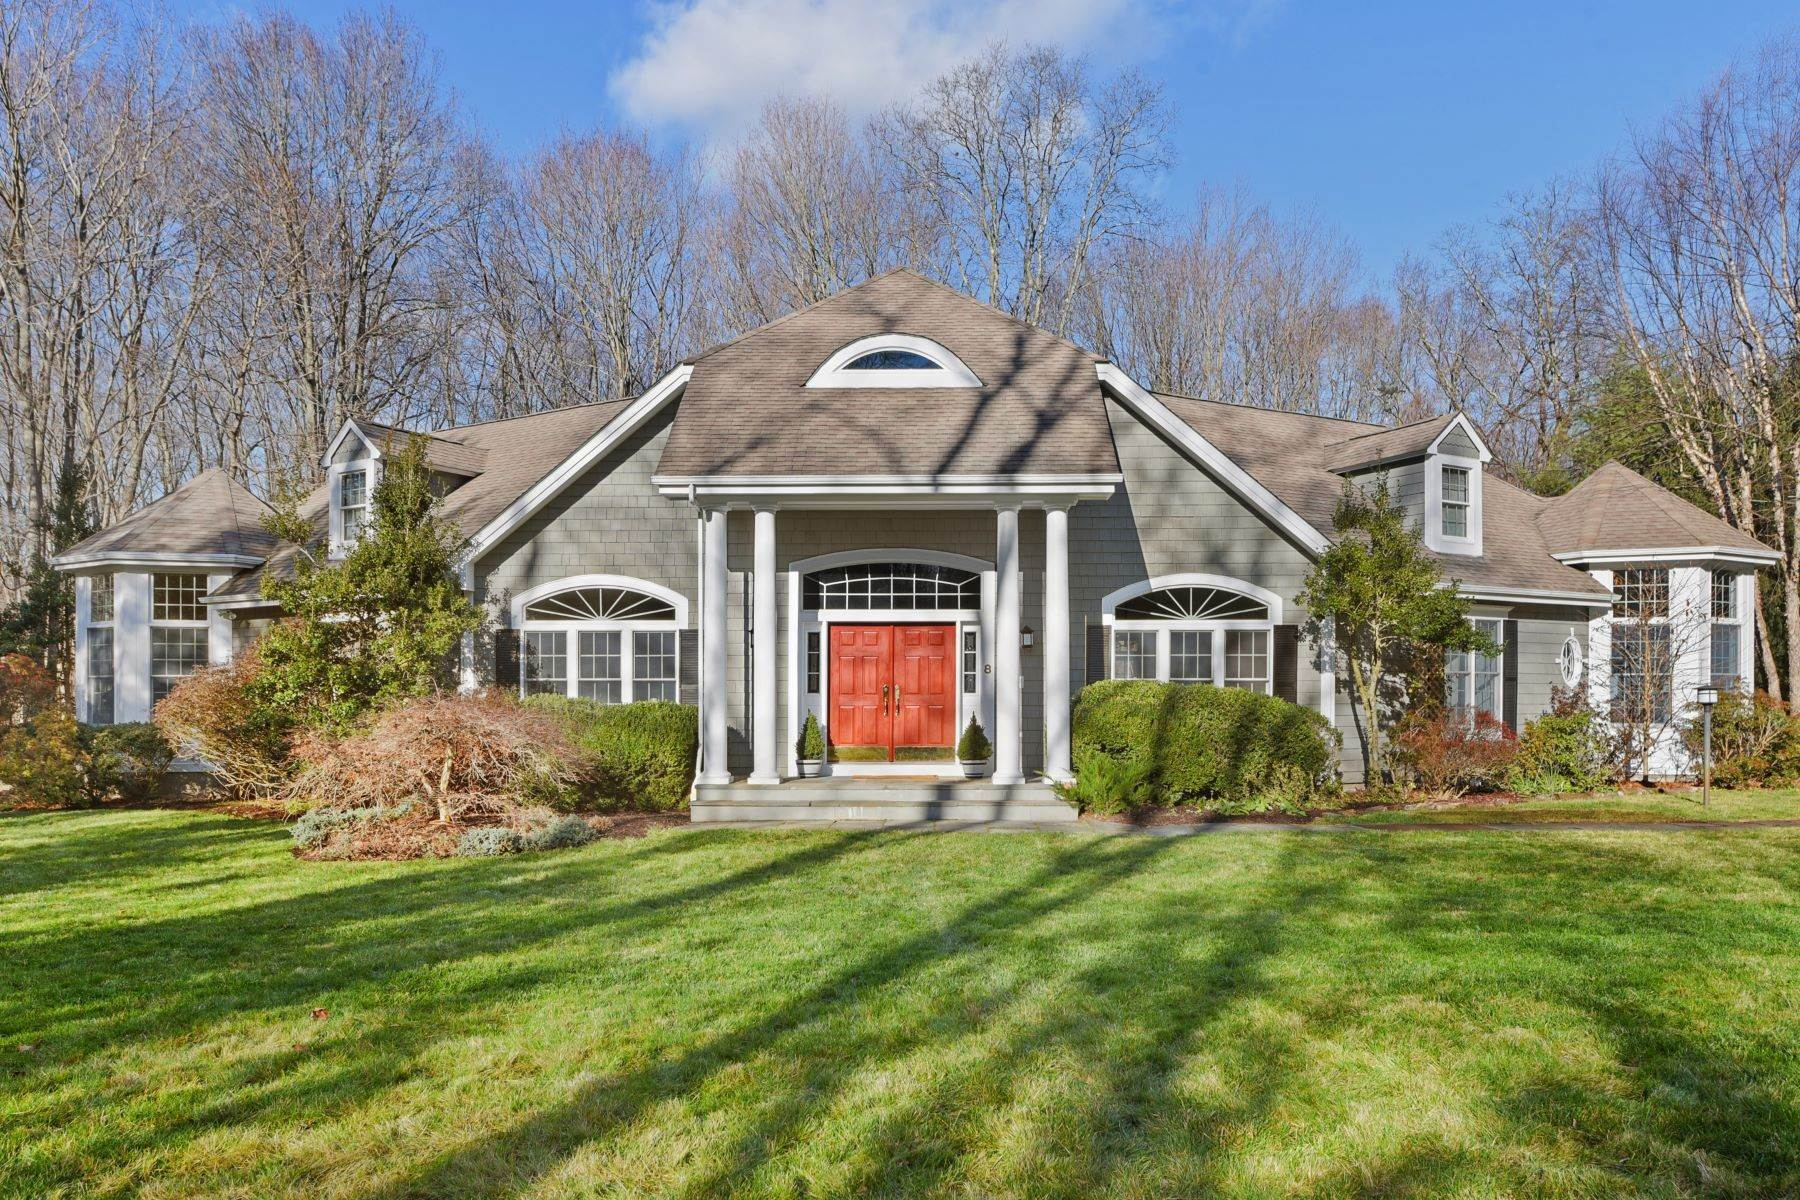 Single Family Homes for Sale at Exquisite Wooded Property By Golf Course! 8 Stockbridge Road Mount Kisco, New York 10549 United States